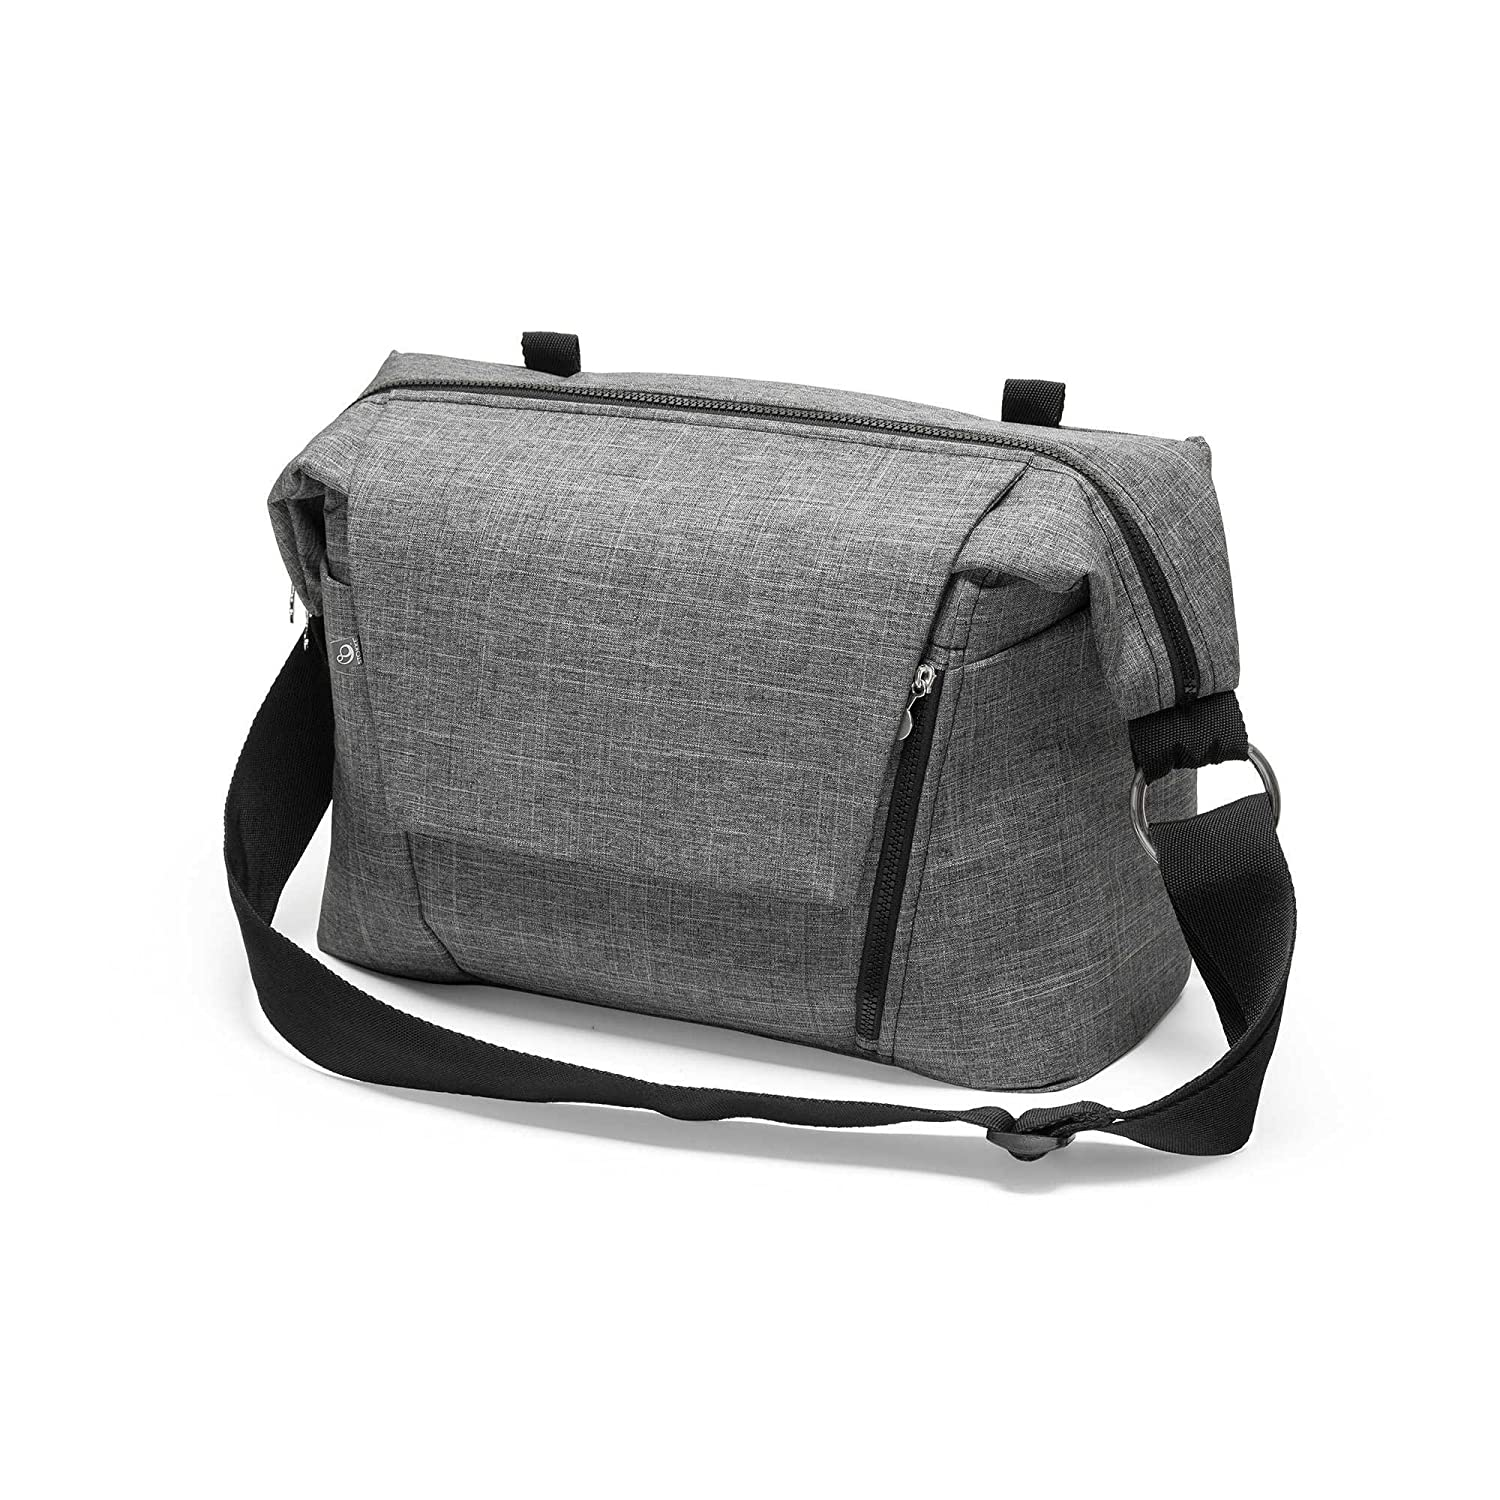 Stokke Changing Bag, Black Melange